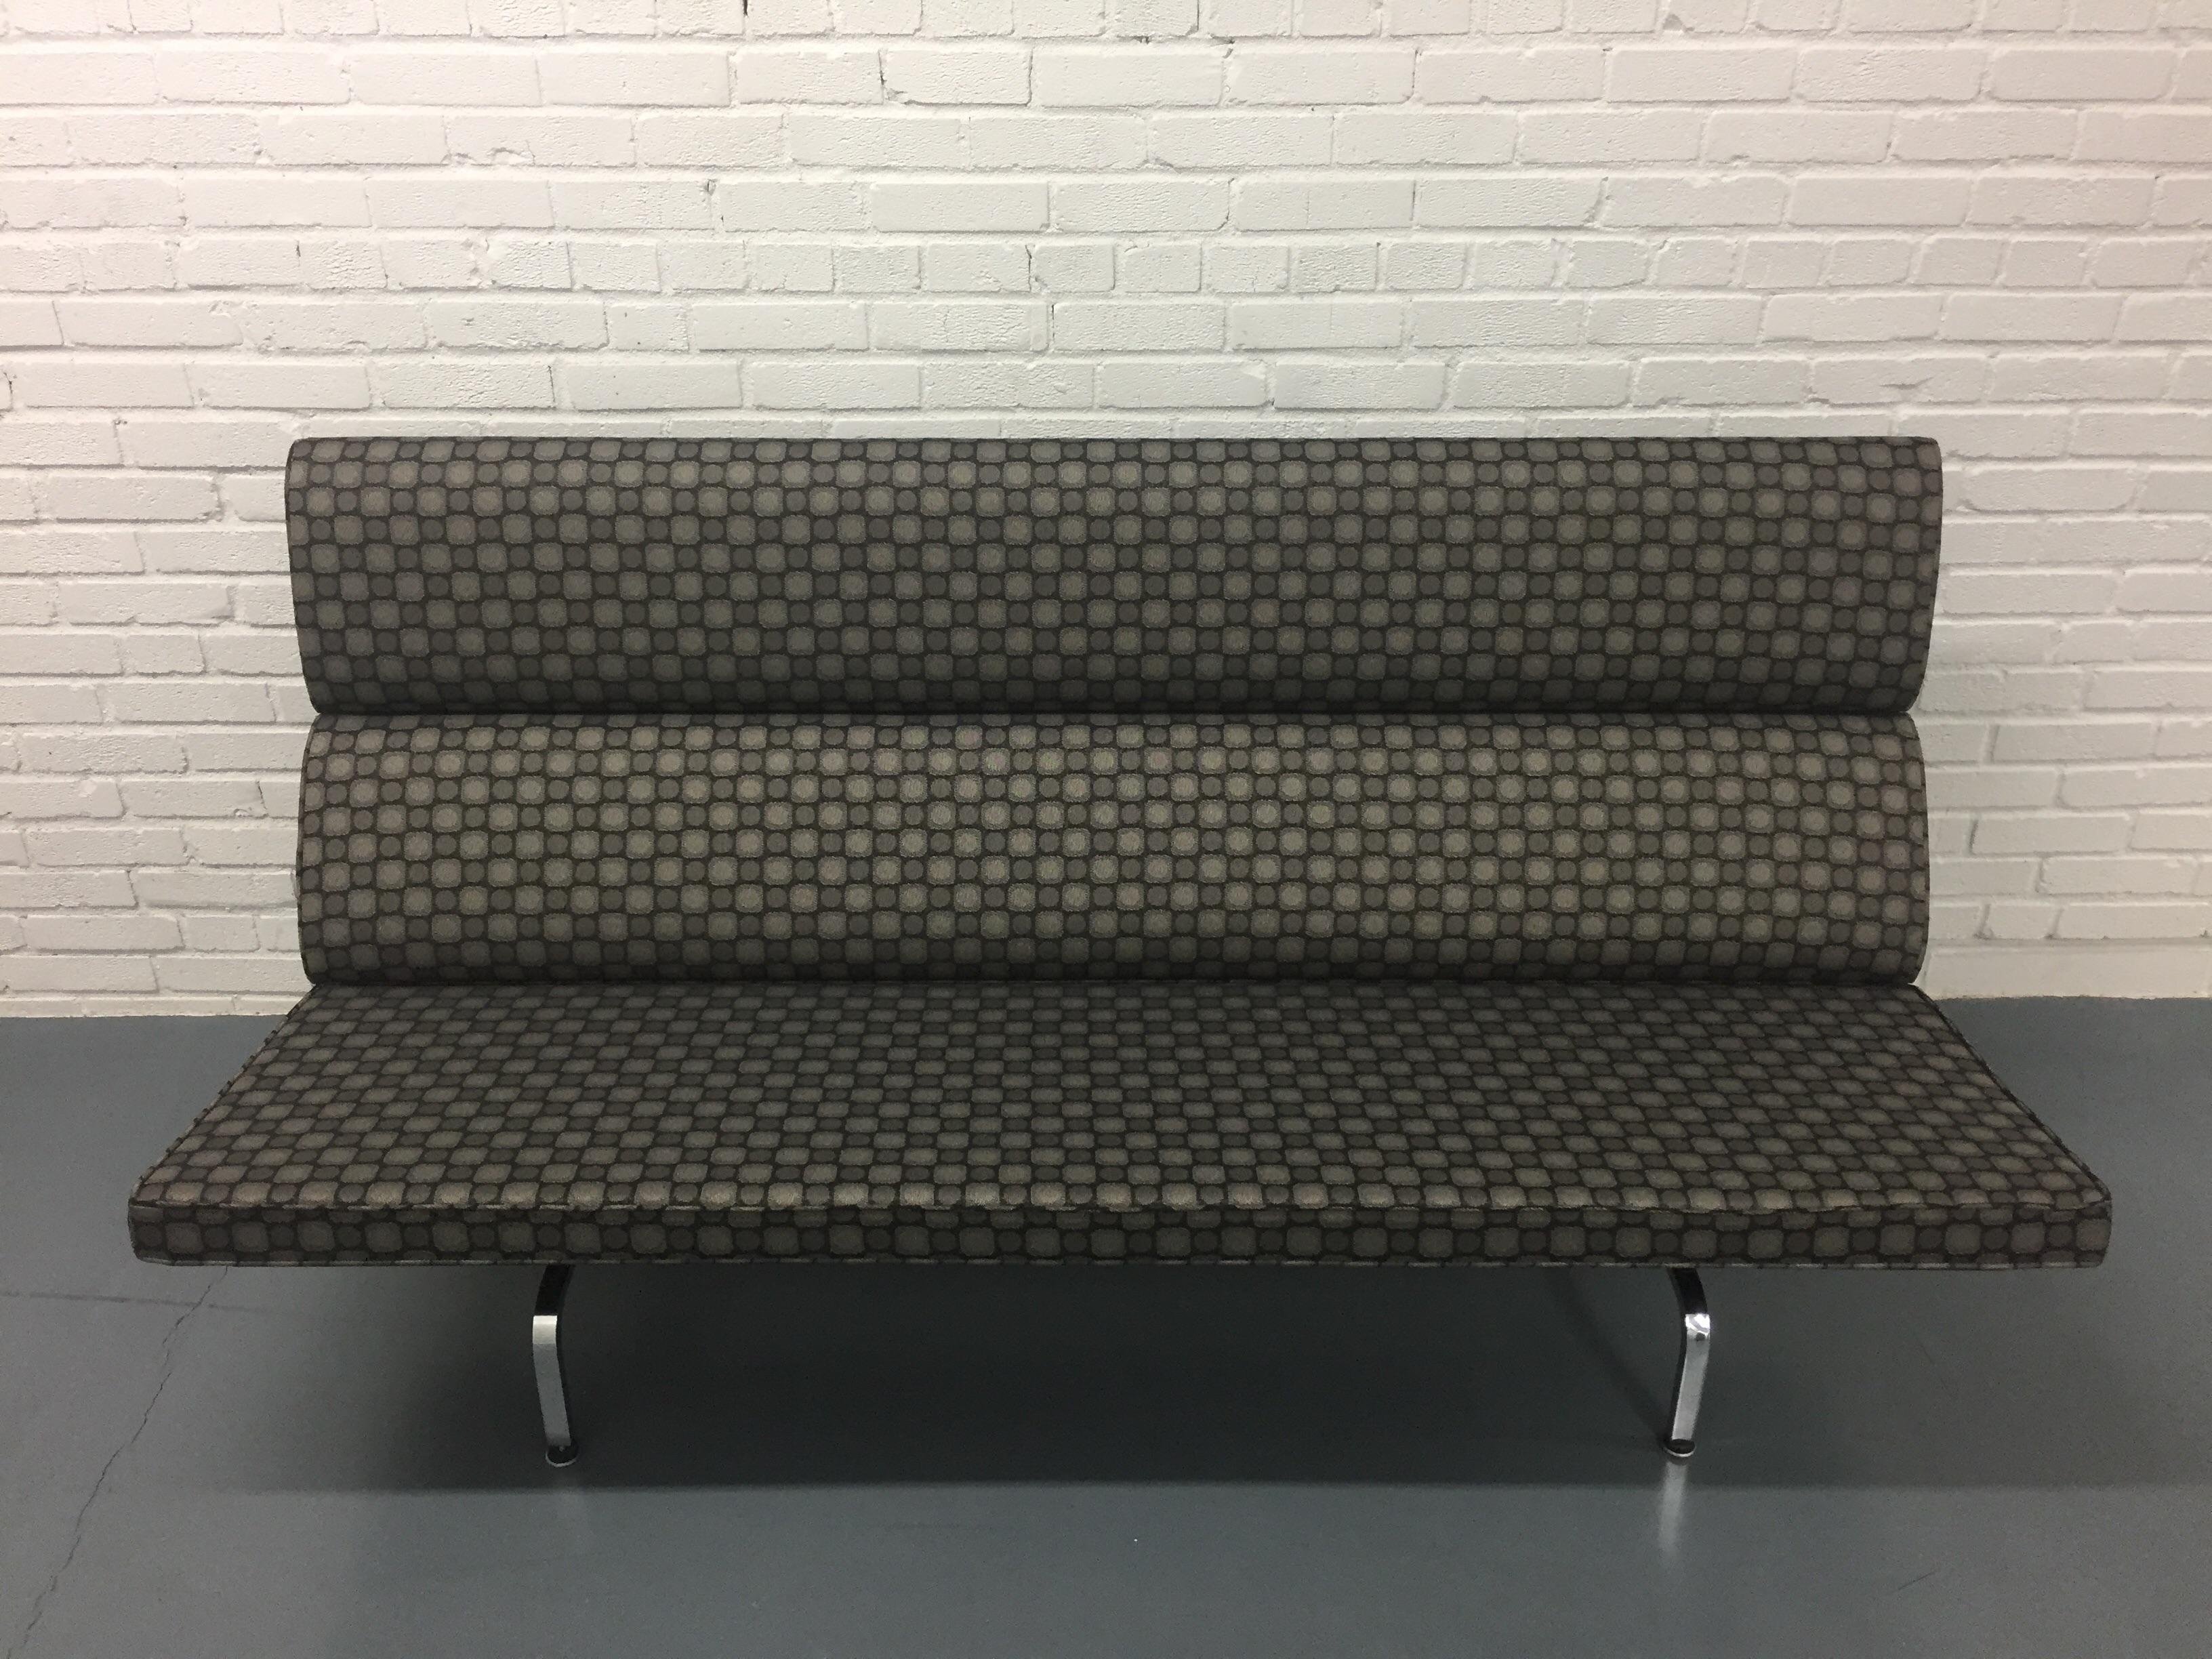 eames sofa compact m s set chairish 2000s for sale image 5 of